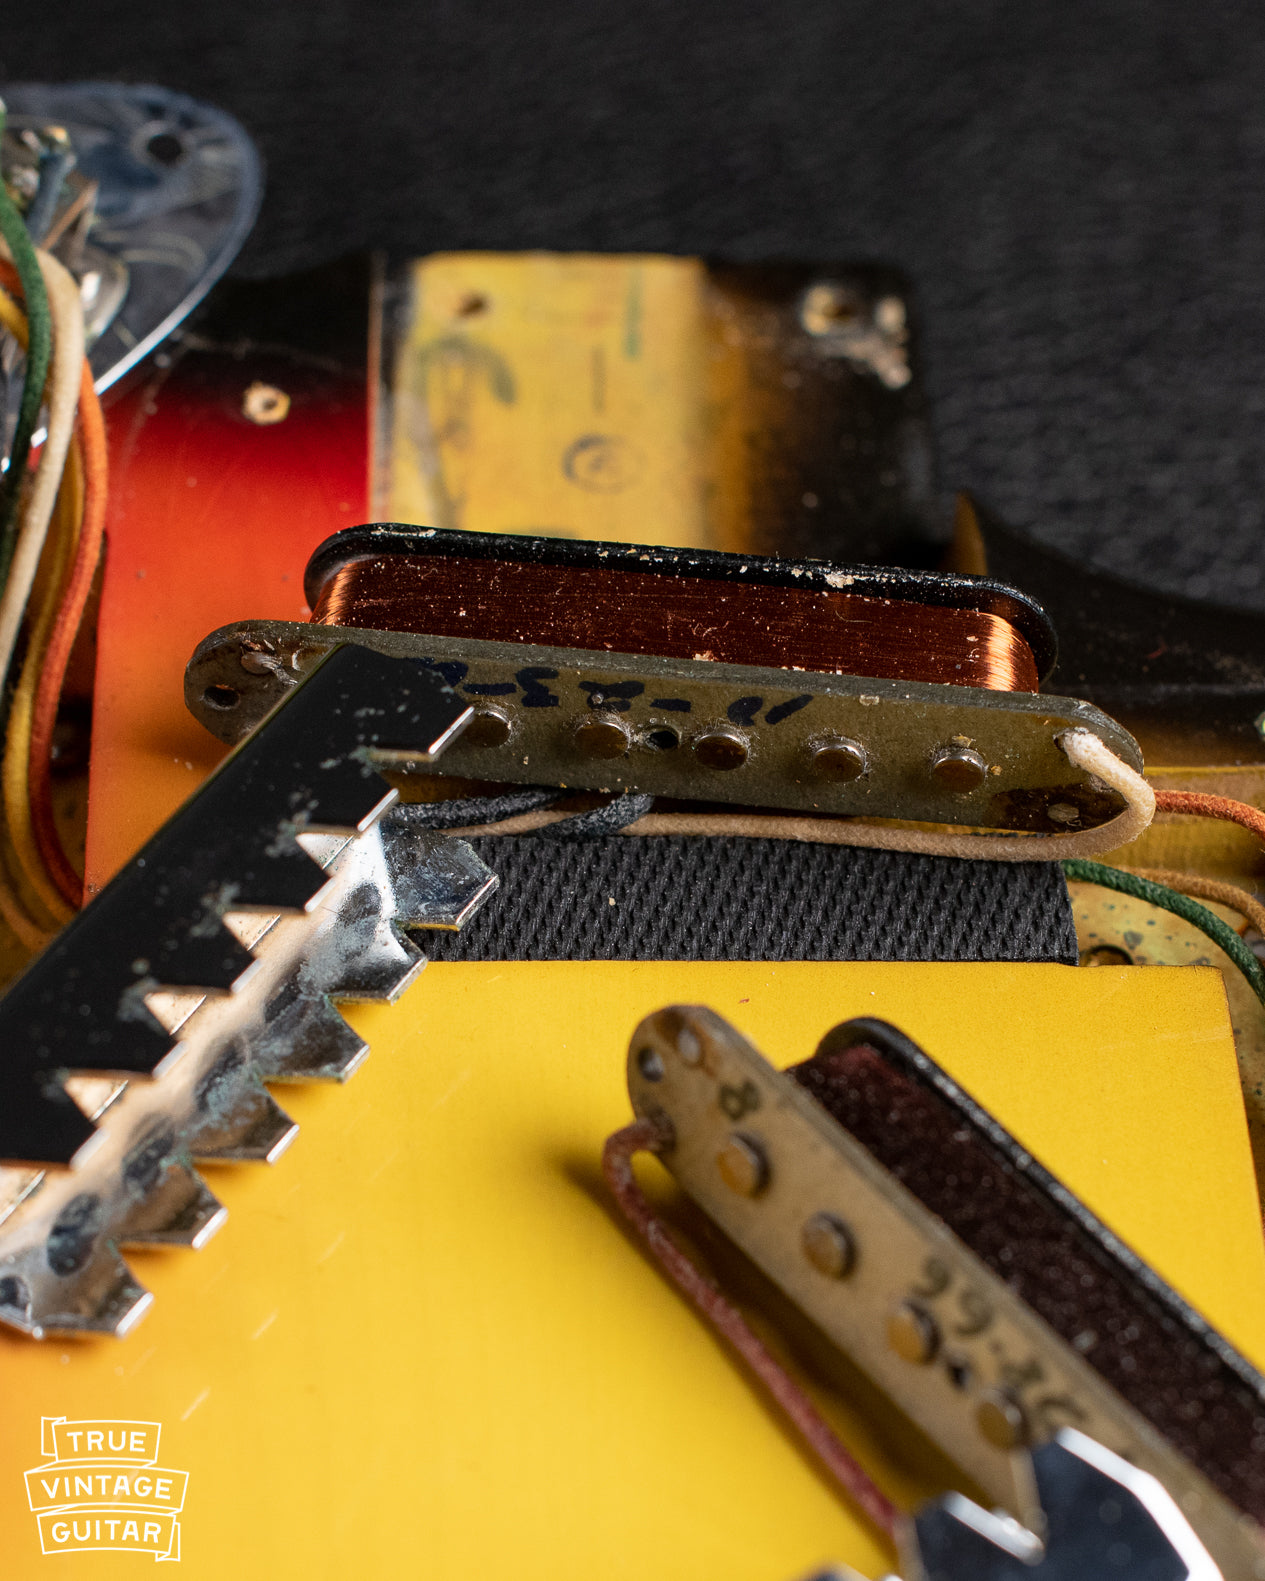 How to date Fender Jaguar pickups with date signature